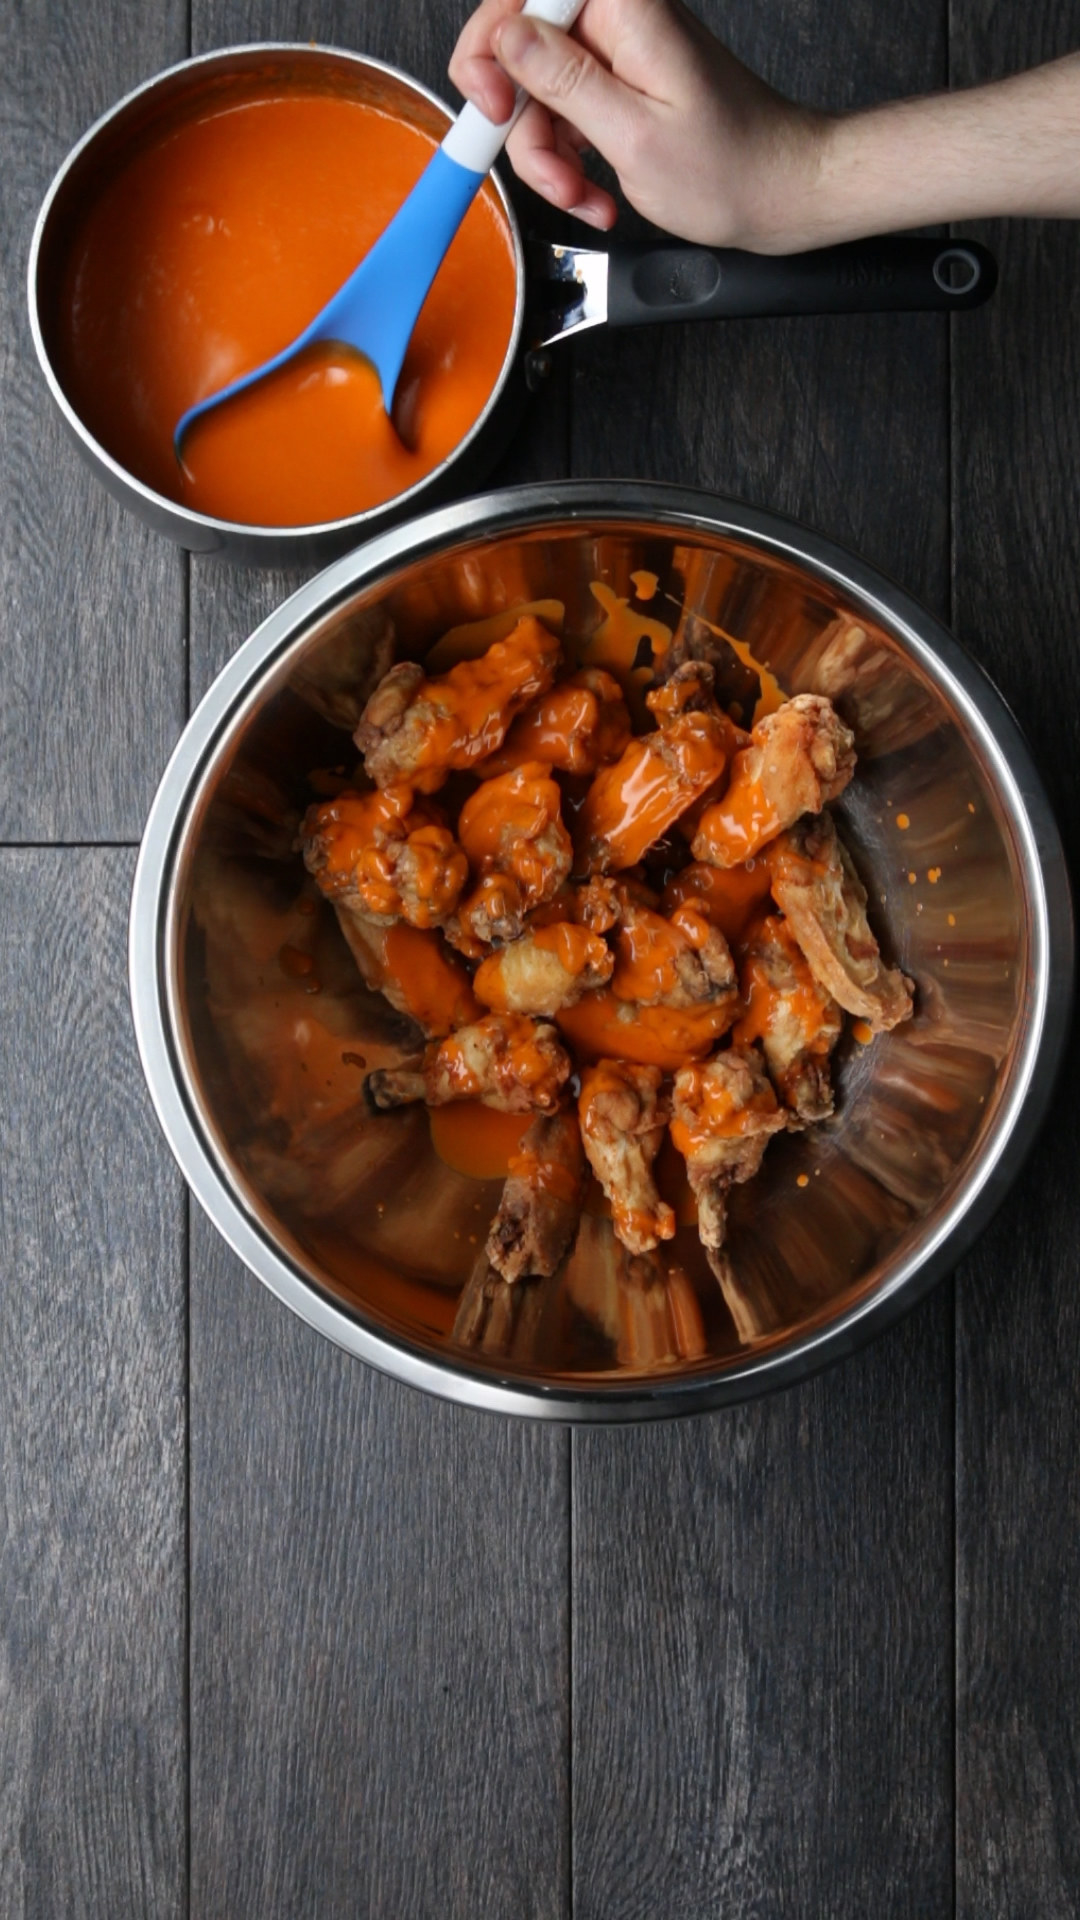 I Tested Famous Chicken Wing Recipes To Find The Absolute Best